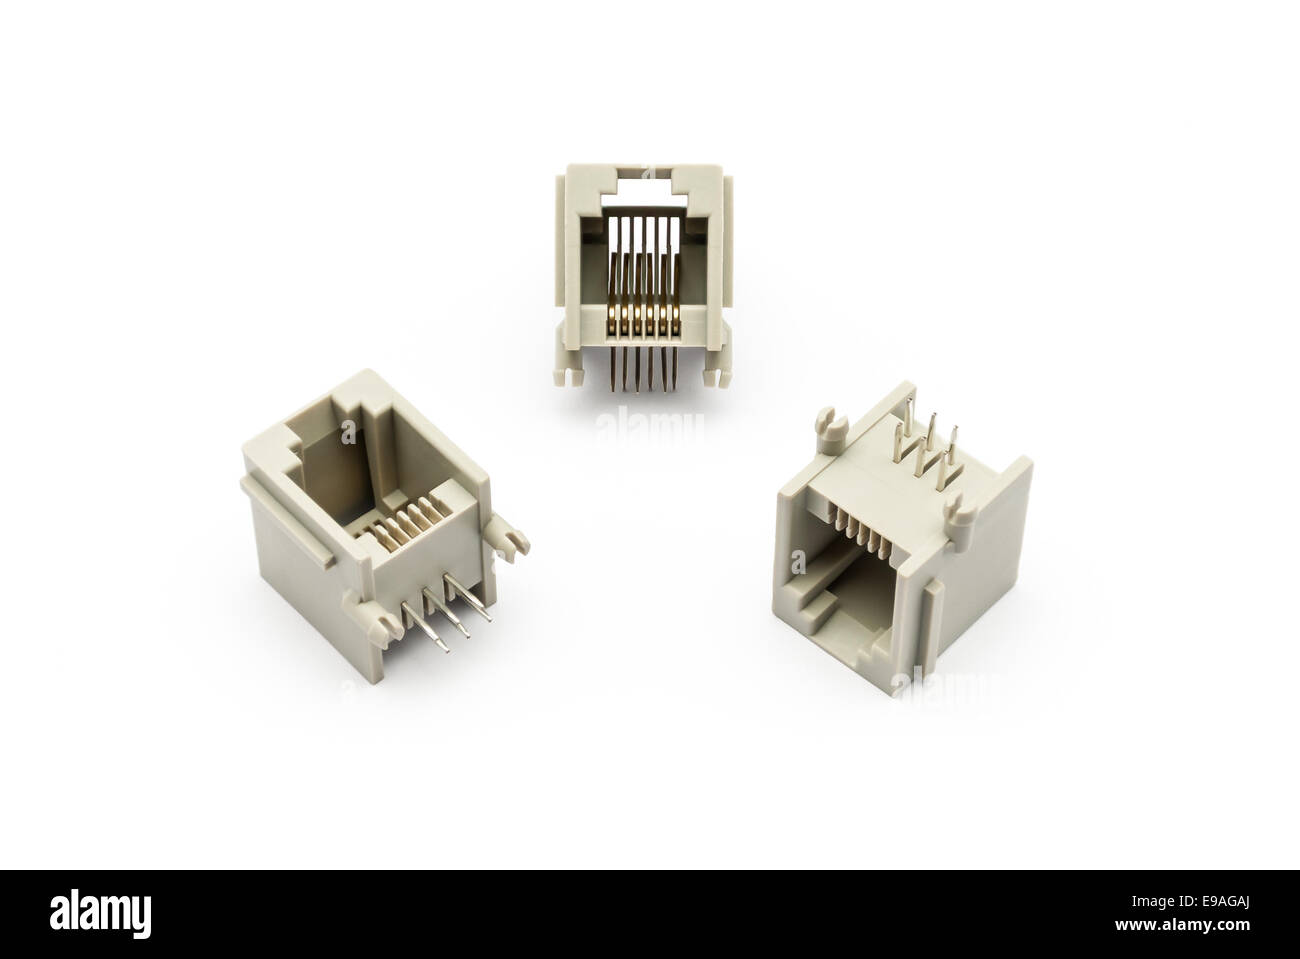 Pile of RJ-11 Jacks. Stock Photo